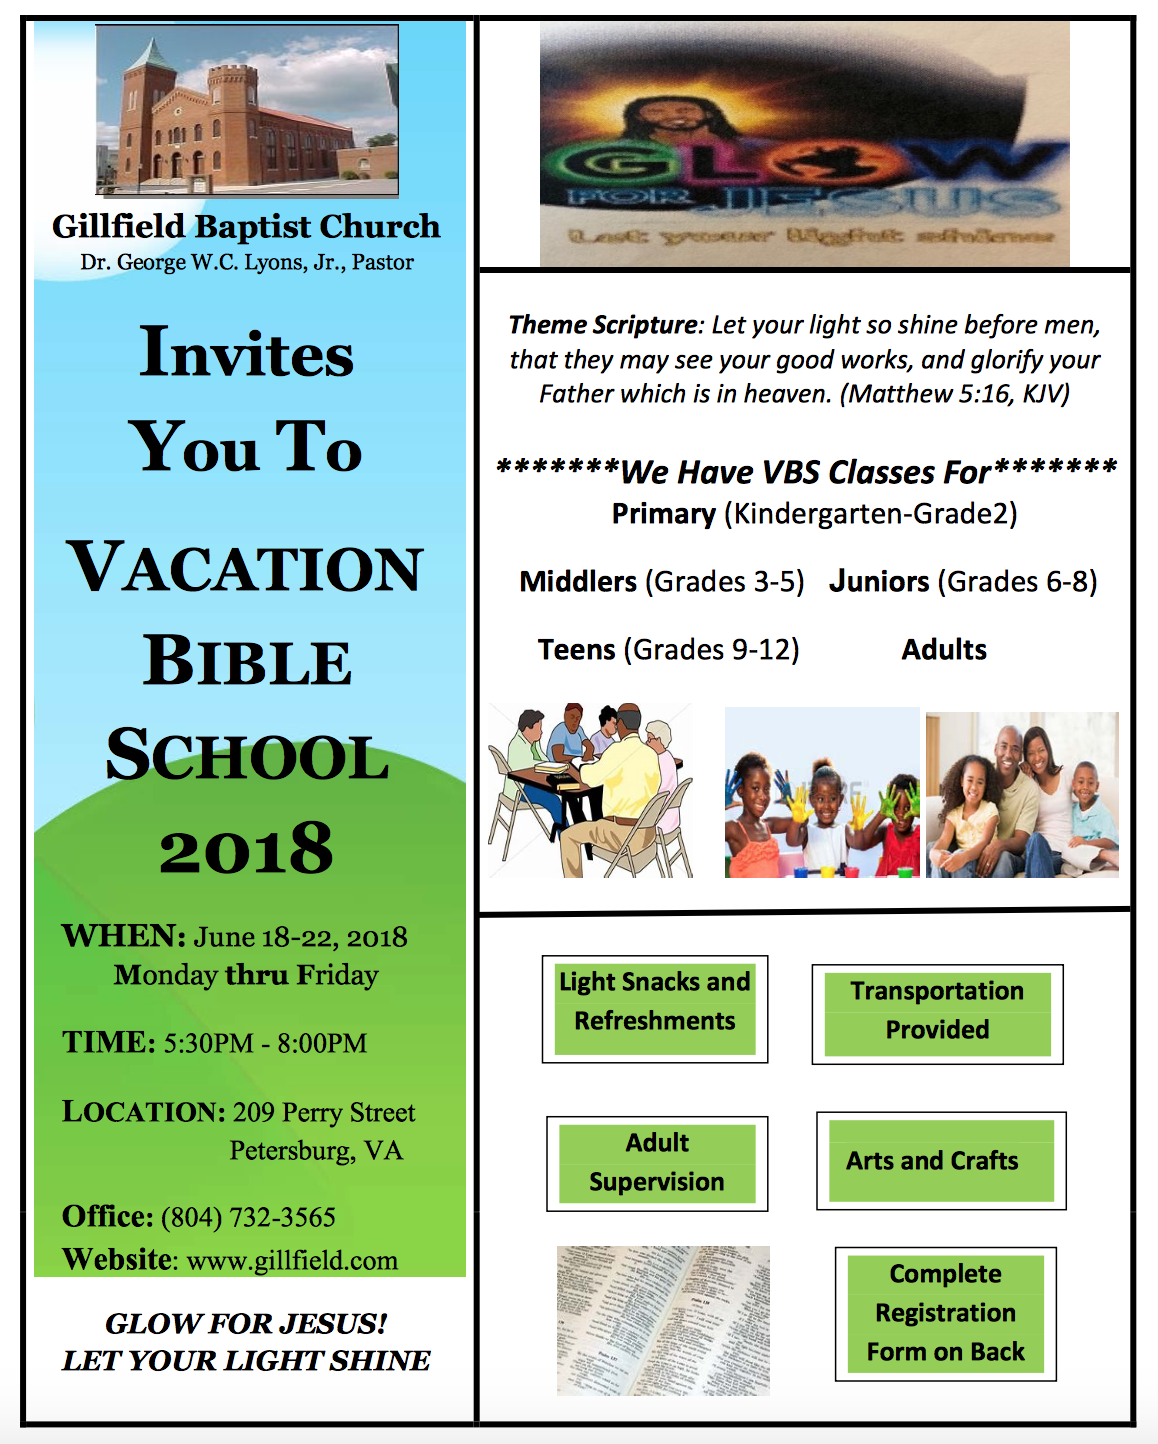 Gillfield Baptist Church - Vacation Bible School